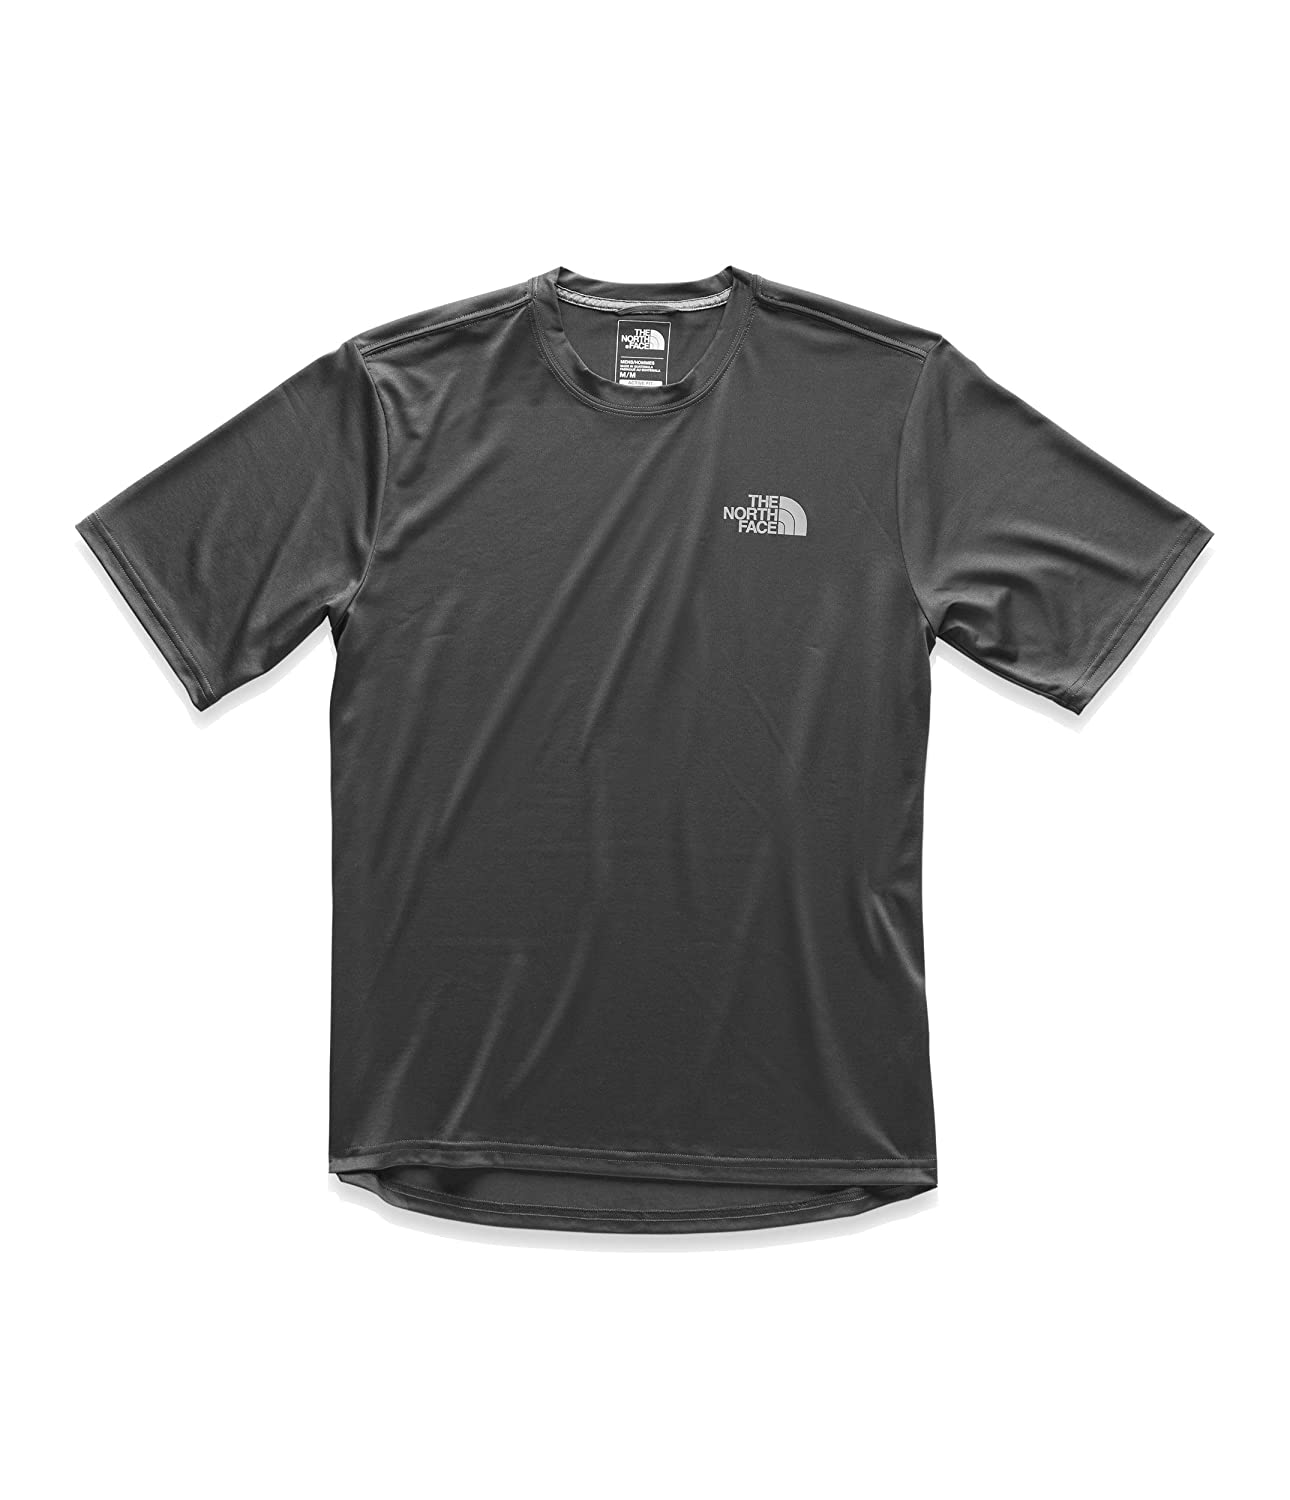 d89f92284 The North Face Men's Short Sleeve LFC Reaxion Tee